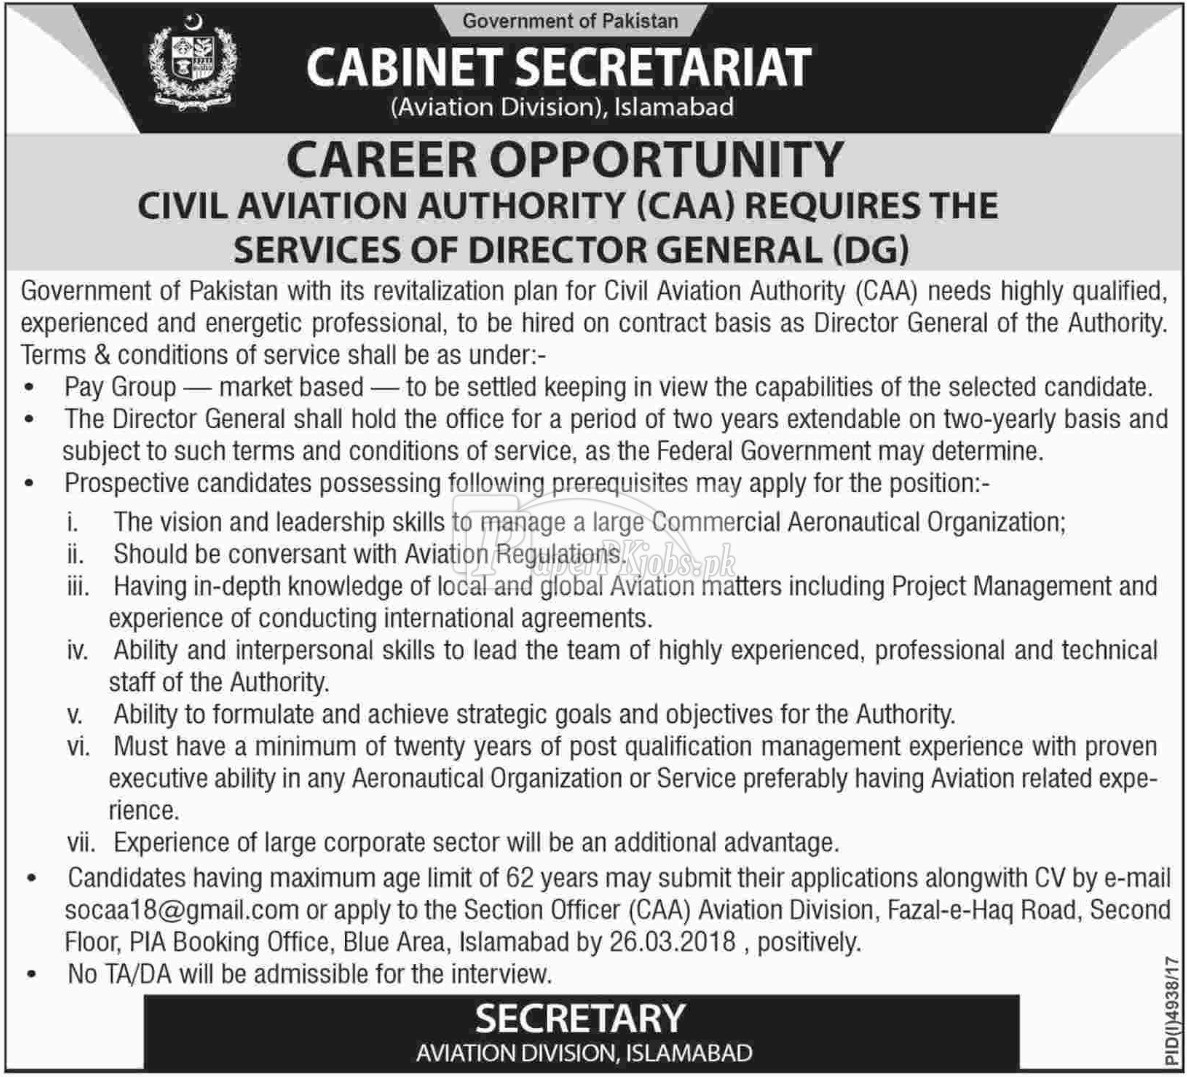 Aviation Division Cabinet Secretariat Islamabad Jobs 2018